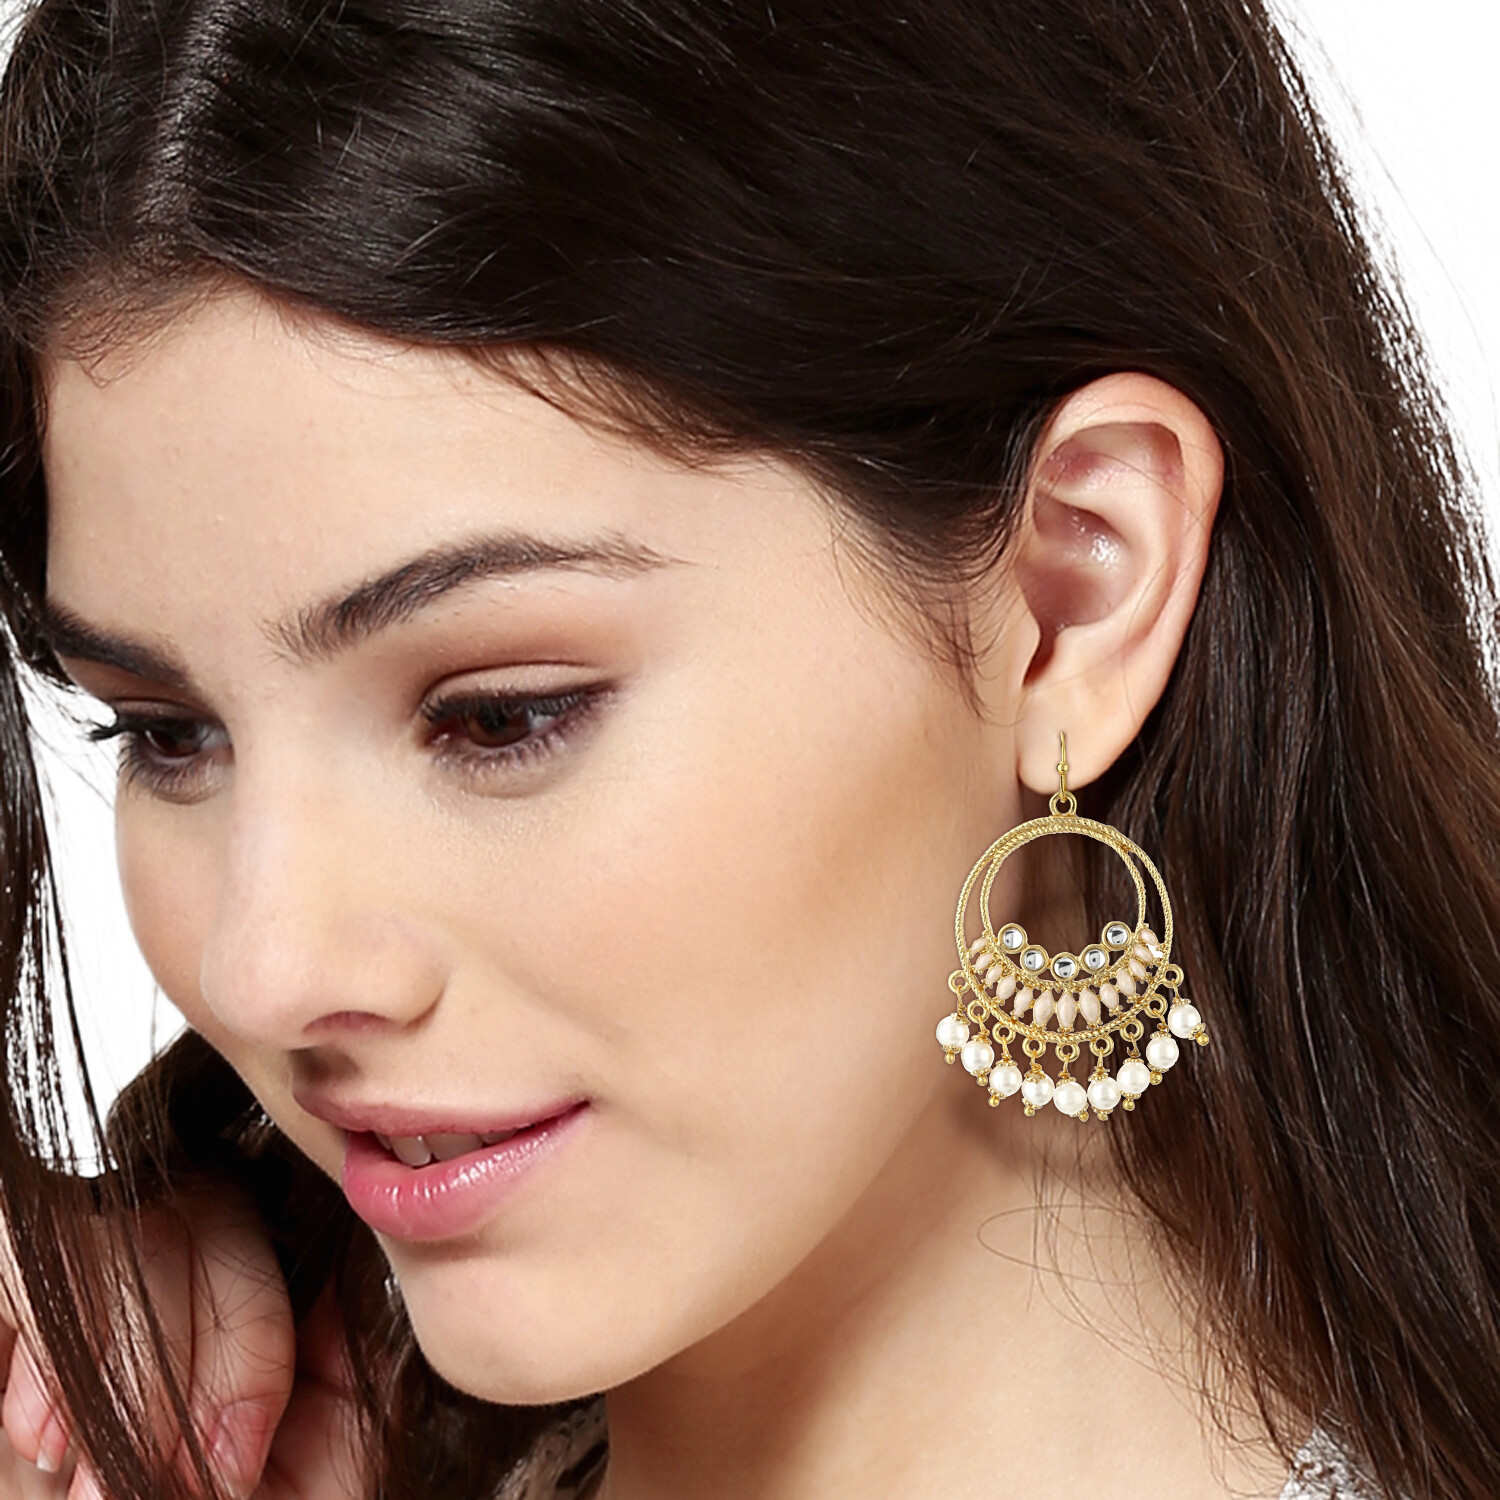 Estele Round Hoops With White Beds Drop earrings